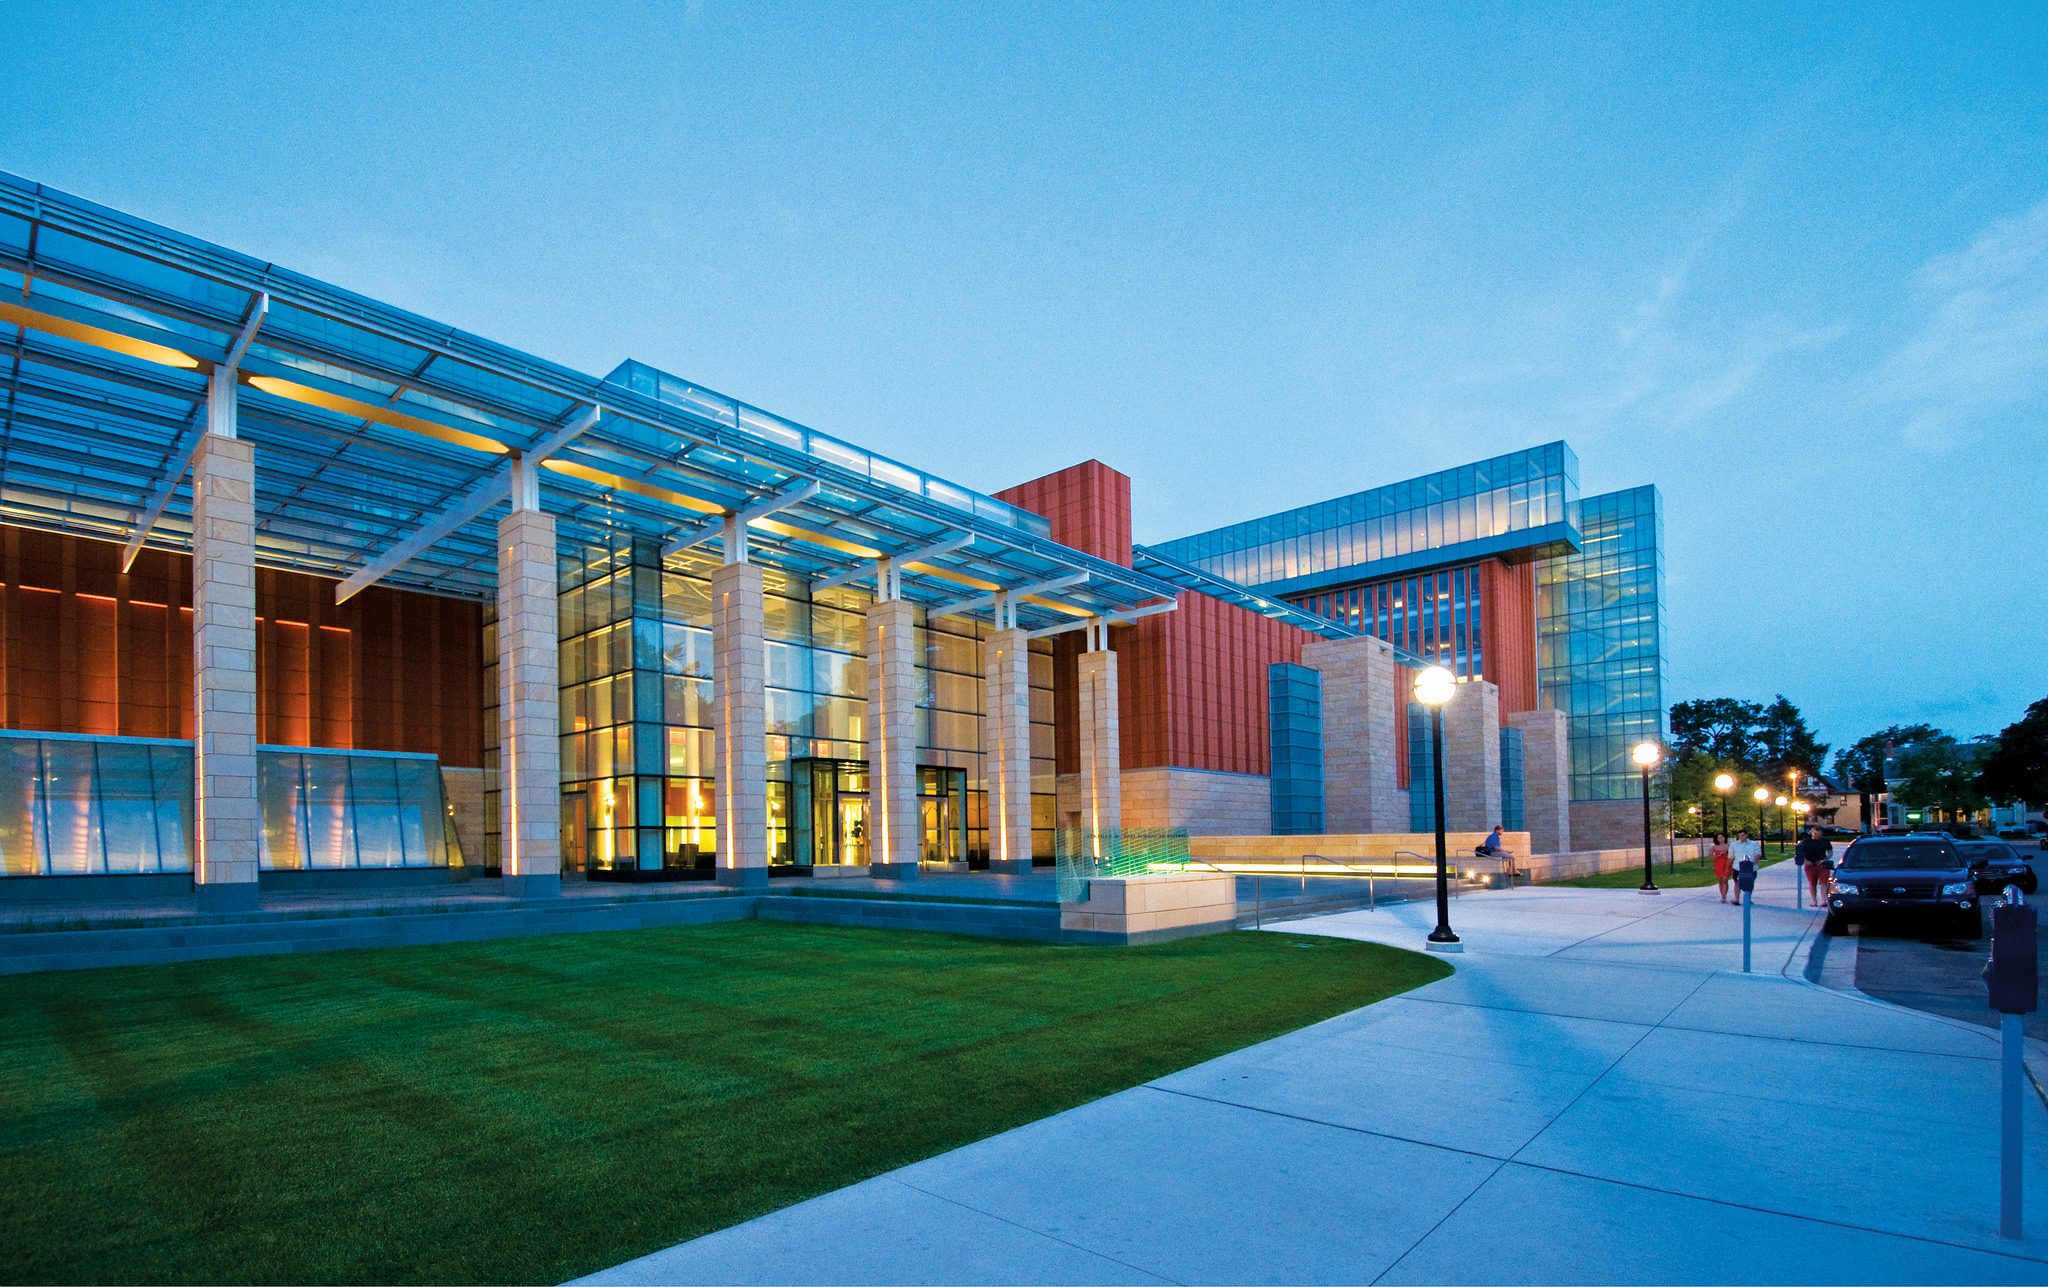 Ross School of Business